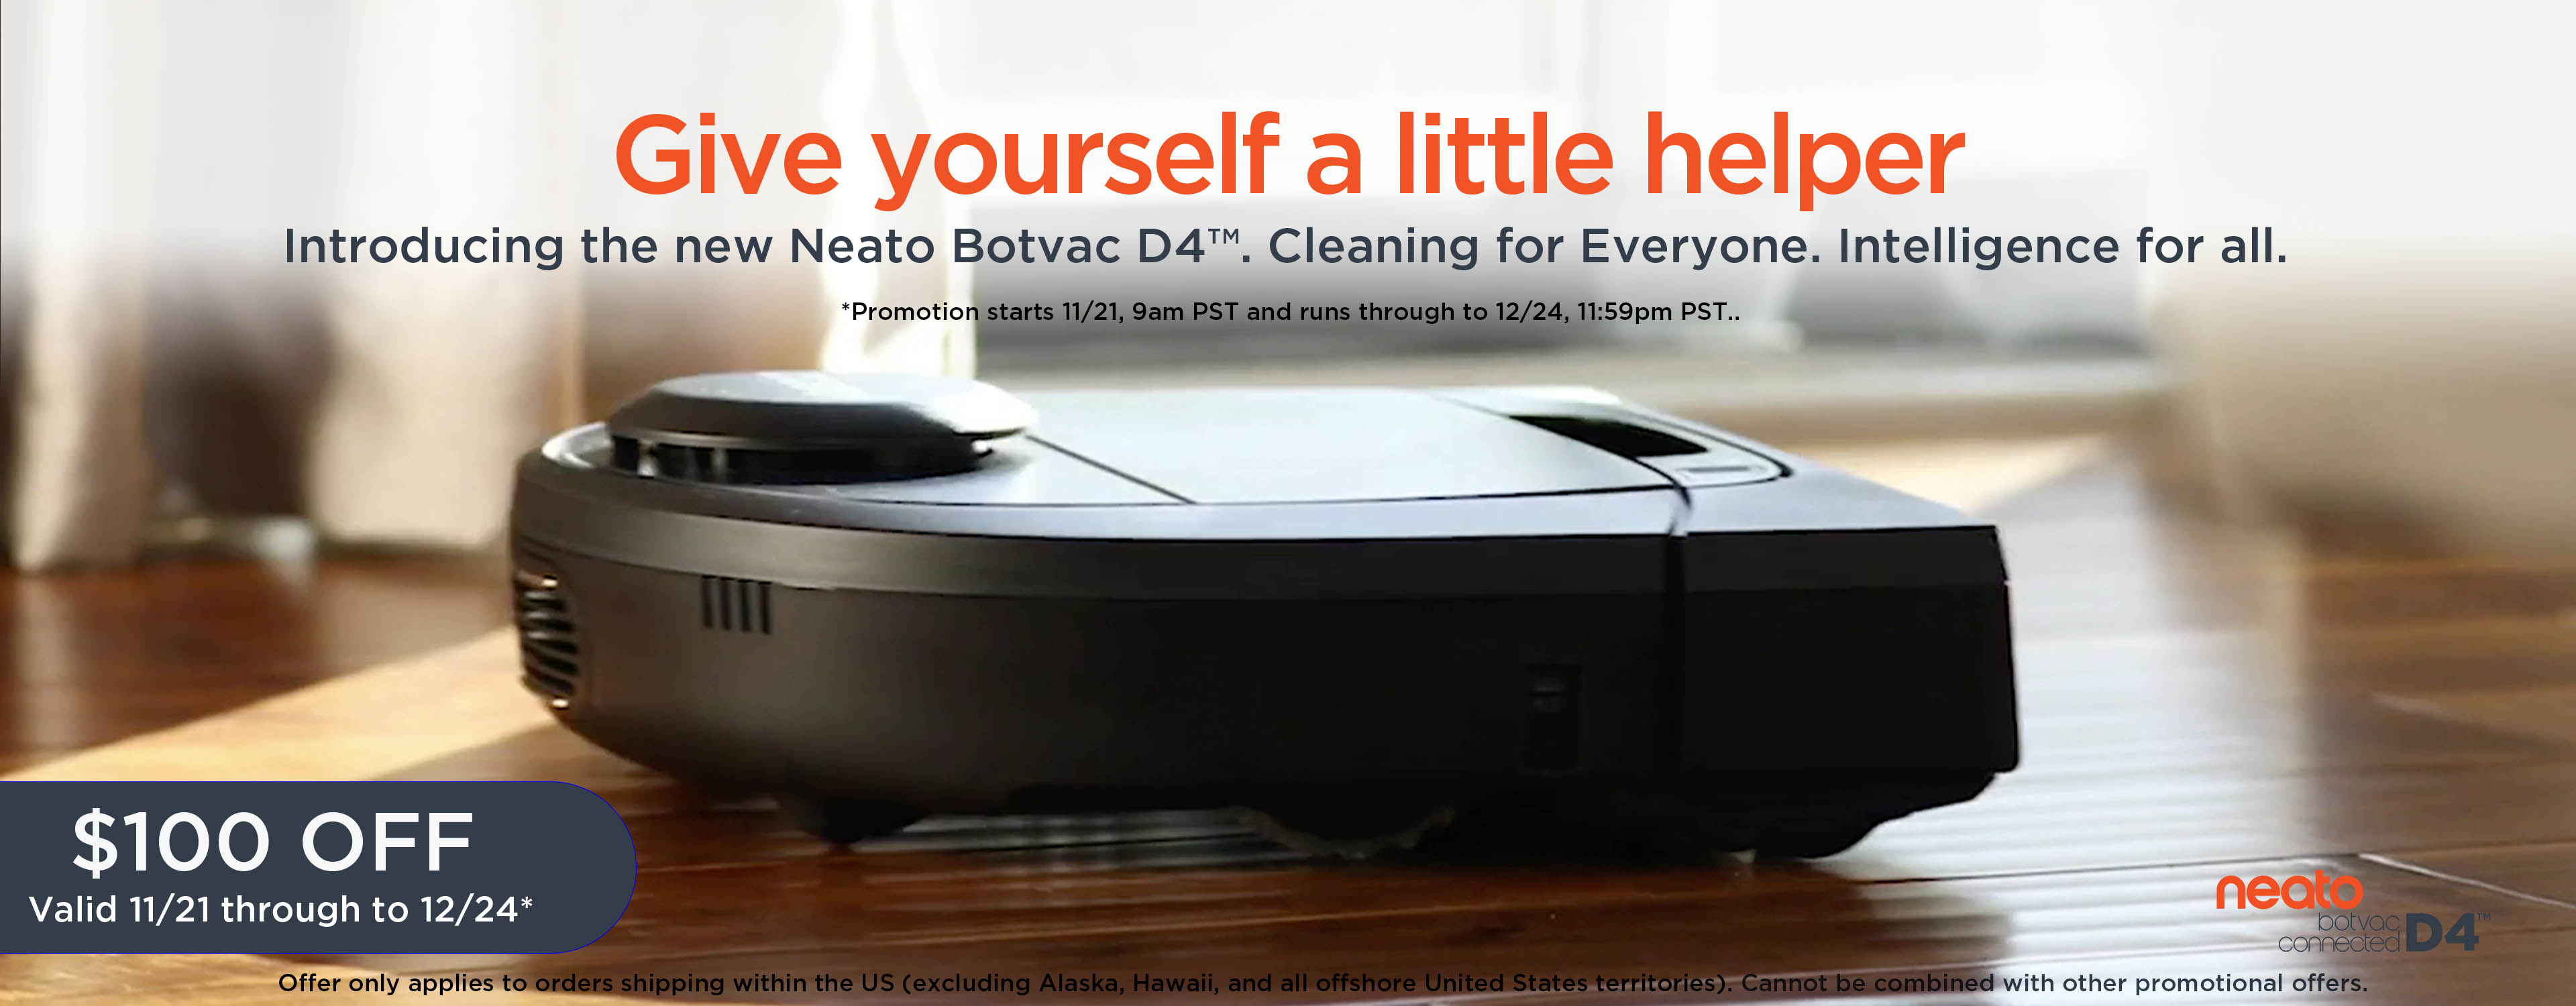 Give yourself a little helper. Introducing the new Neato Botvac D4™. Cleaning for Everyone.